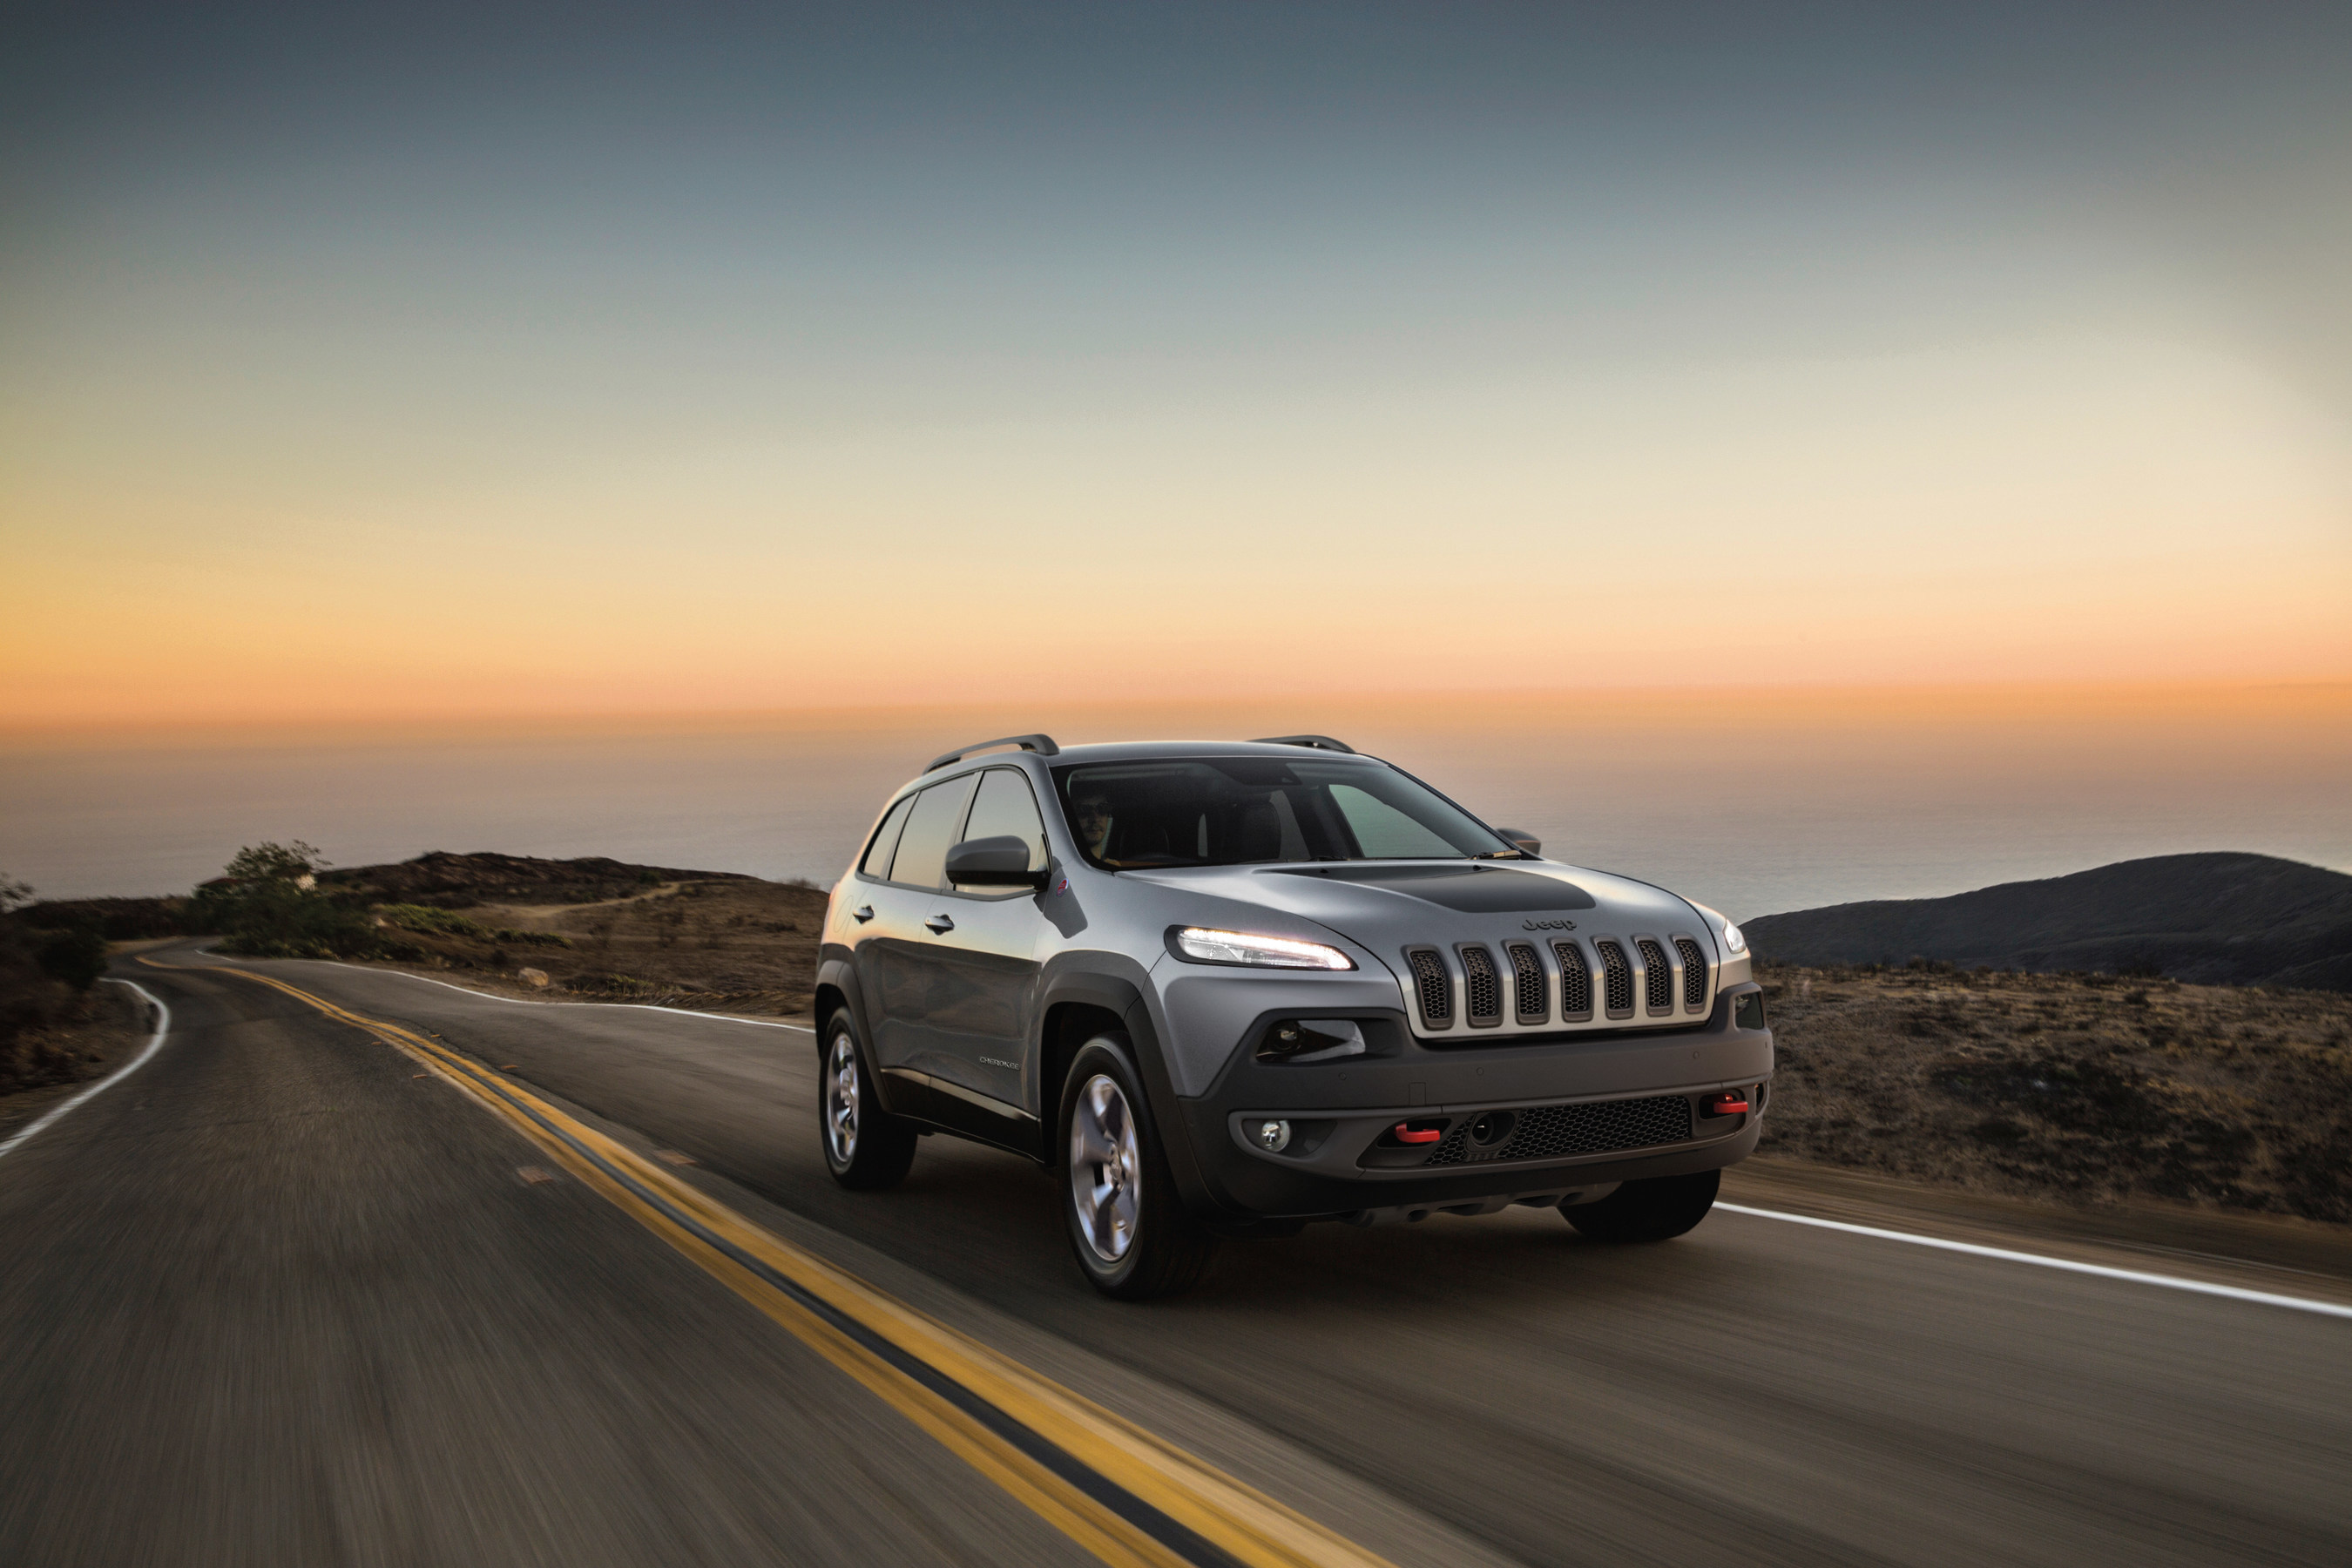 2016 Jeep' Cherokee Trailhawk First Gasoline-powered American-made, American-brand Passenger Vehicle to Qualify for Japan Eco-Car Tax Incentive